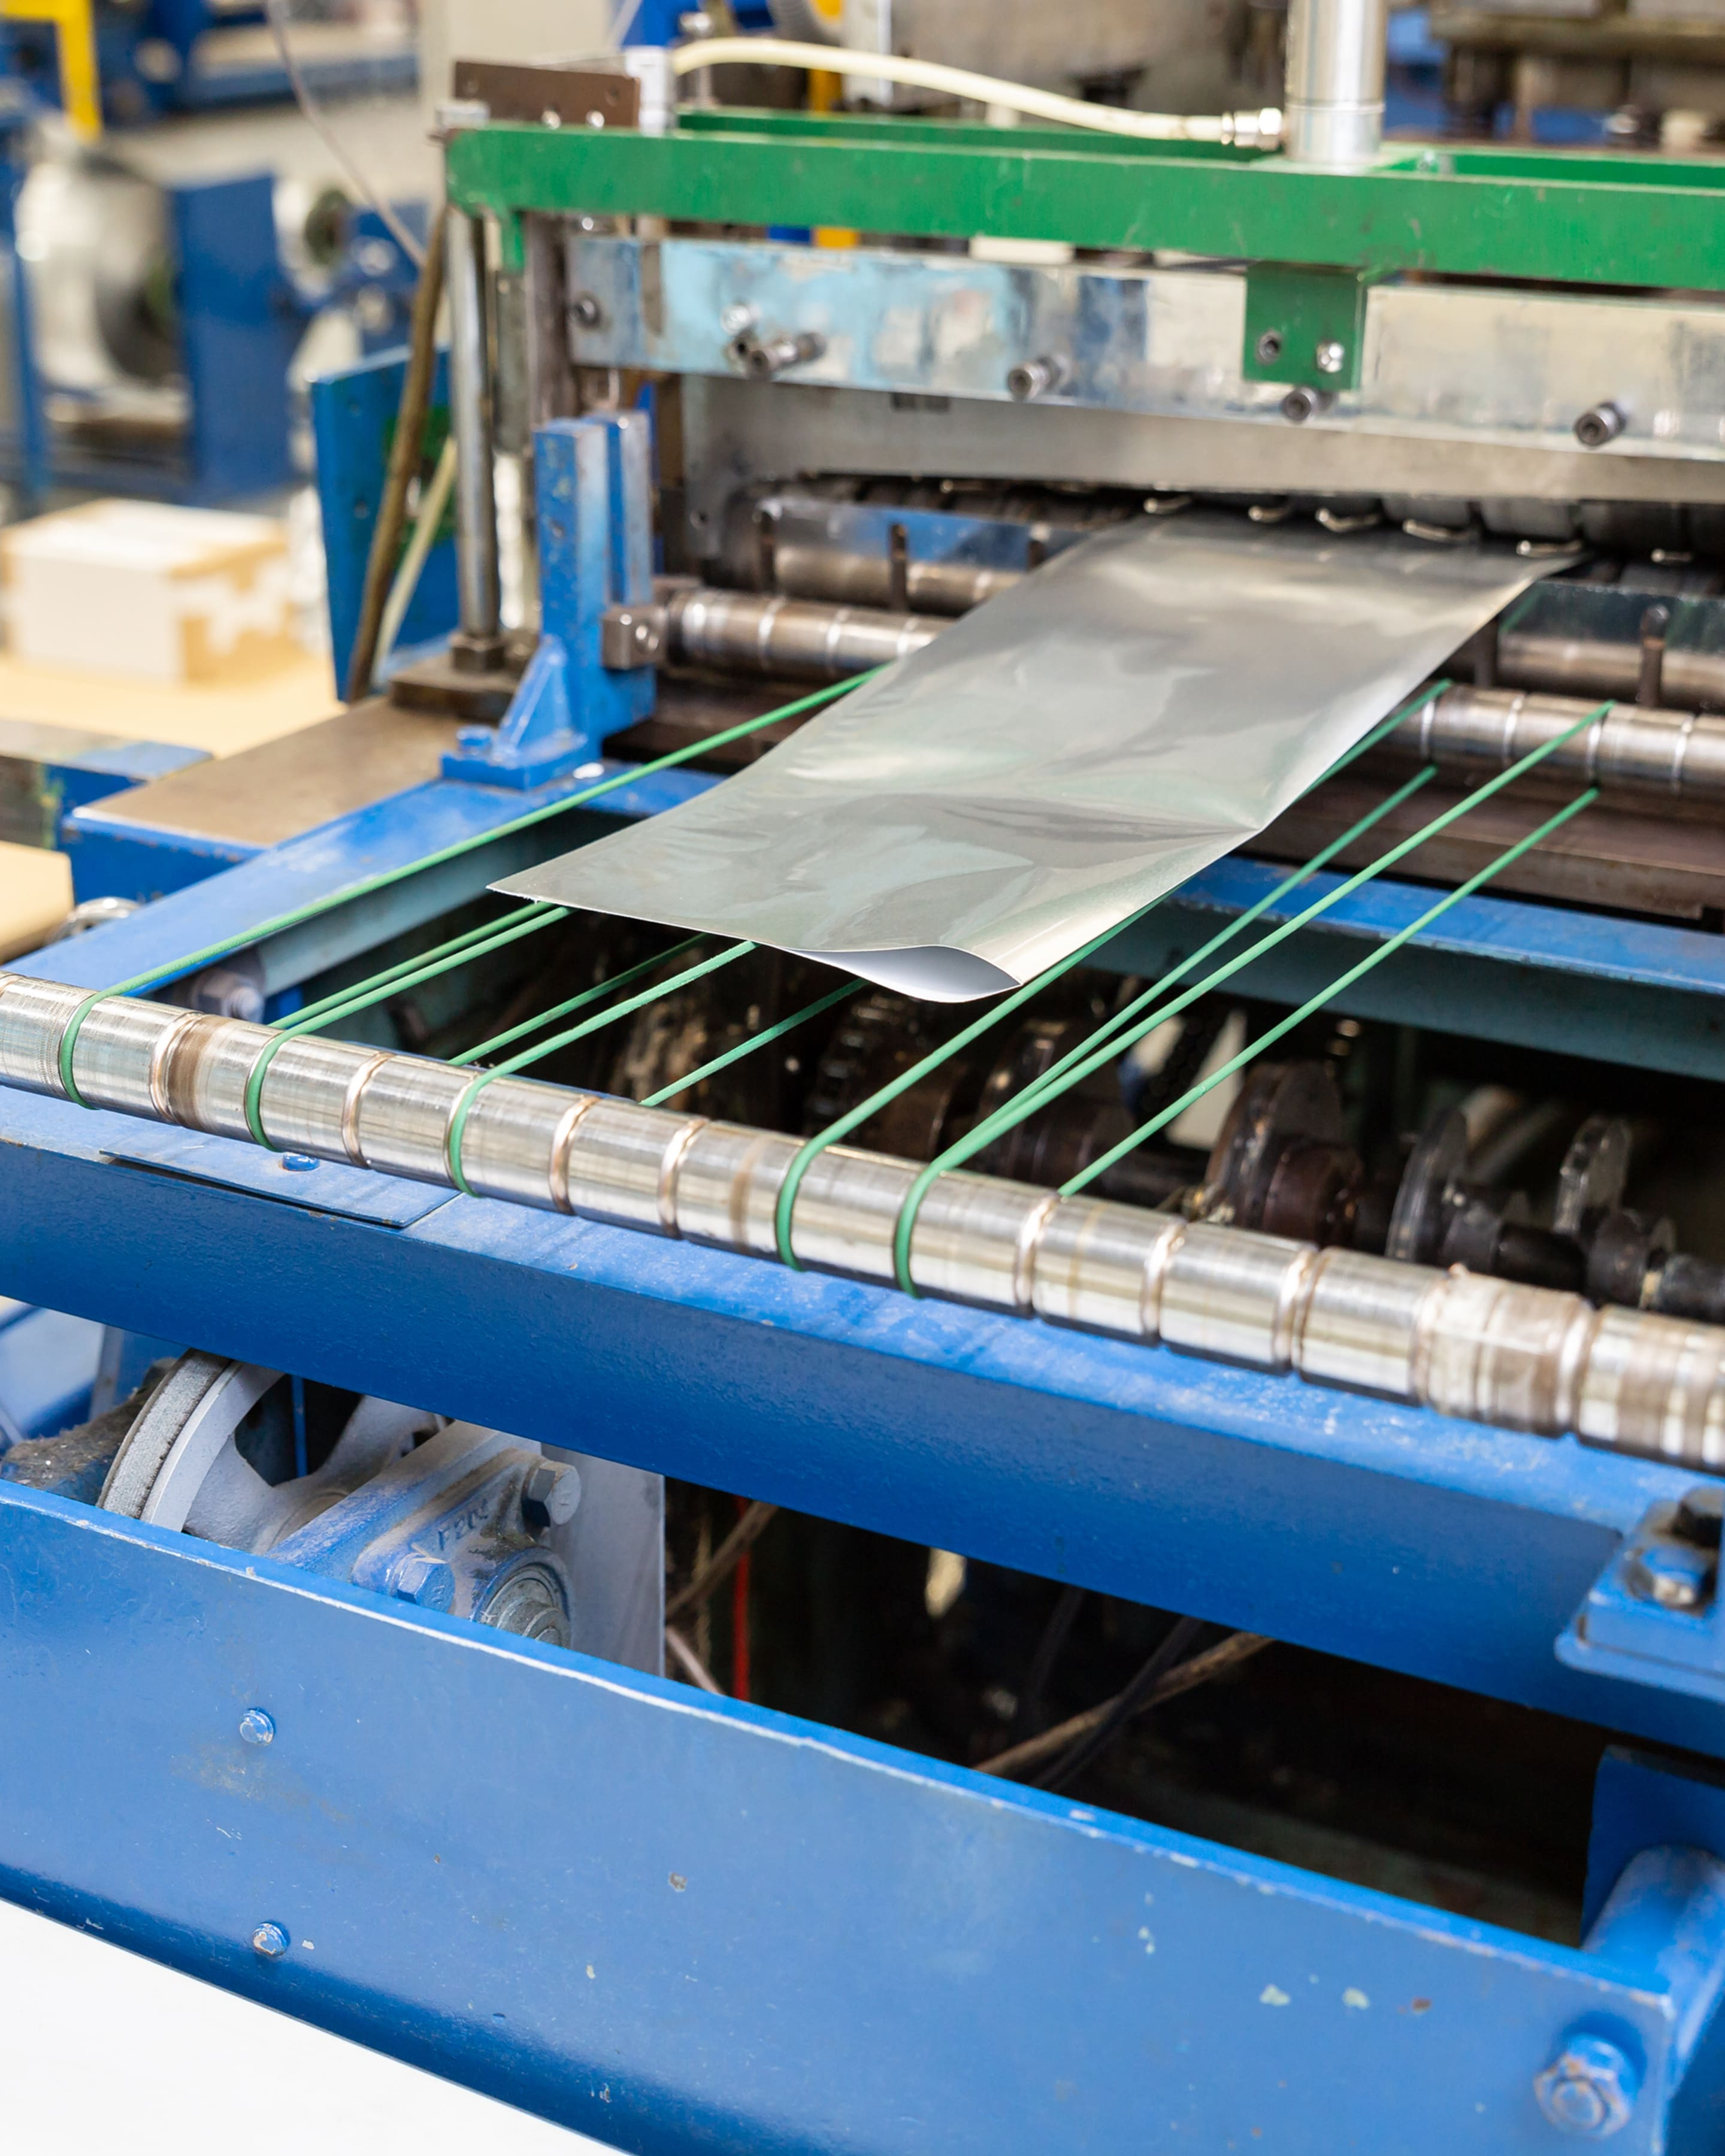 L shaped bag being produced in the UK